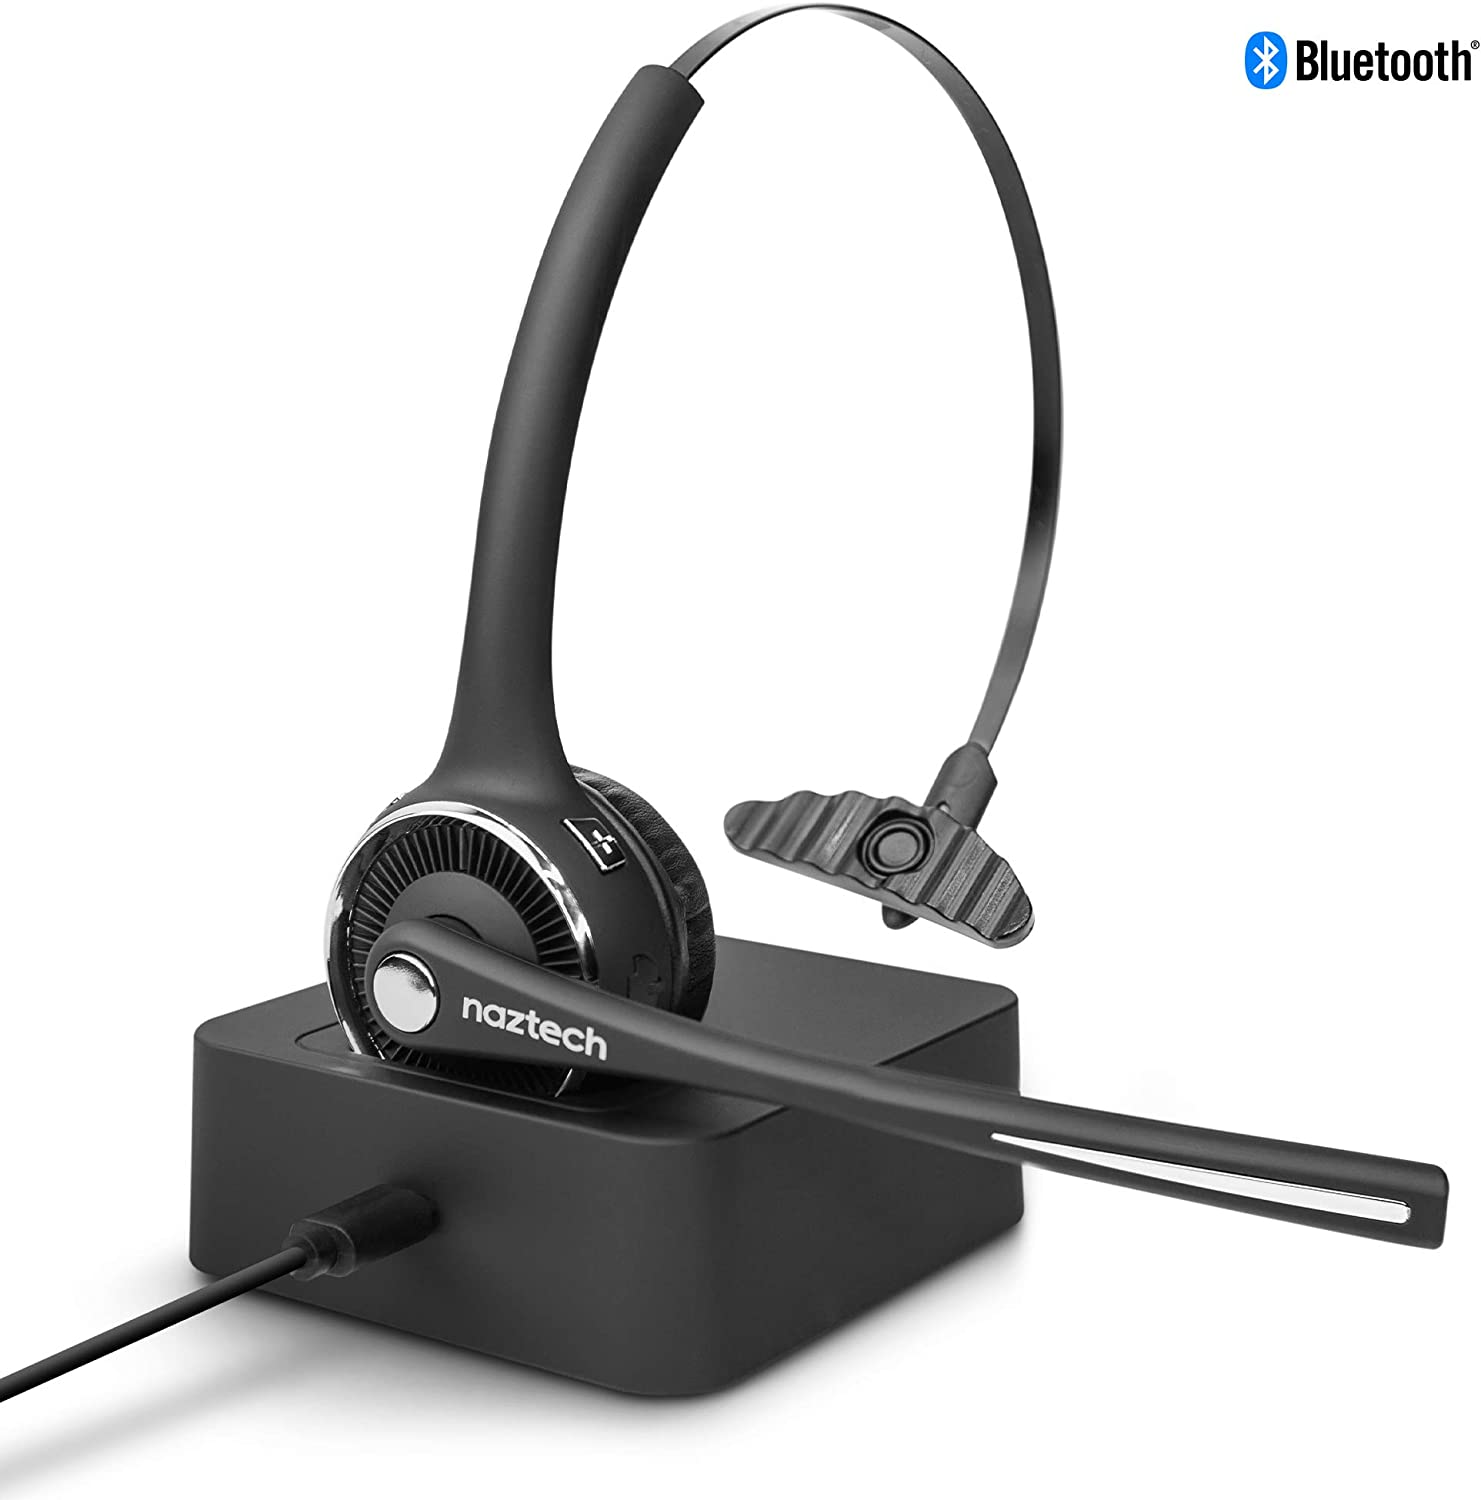 Naztech N980 BT Wireless Headset w/Charging Base, Noise Cancelling Mic, Multipoint Device Connection [Wireless Telephone Headset w/USB, Work-from-Home Connection]